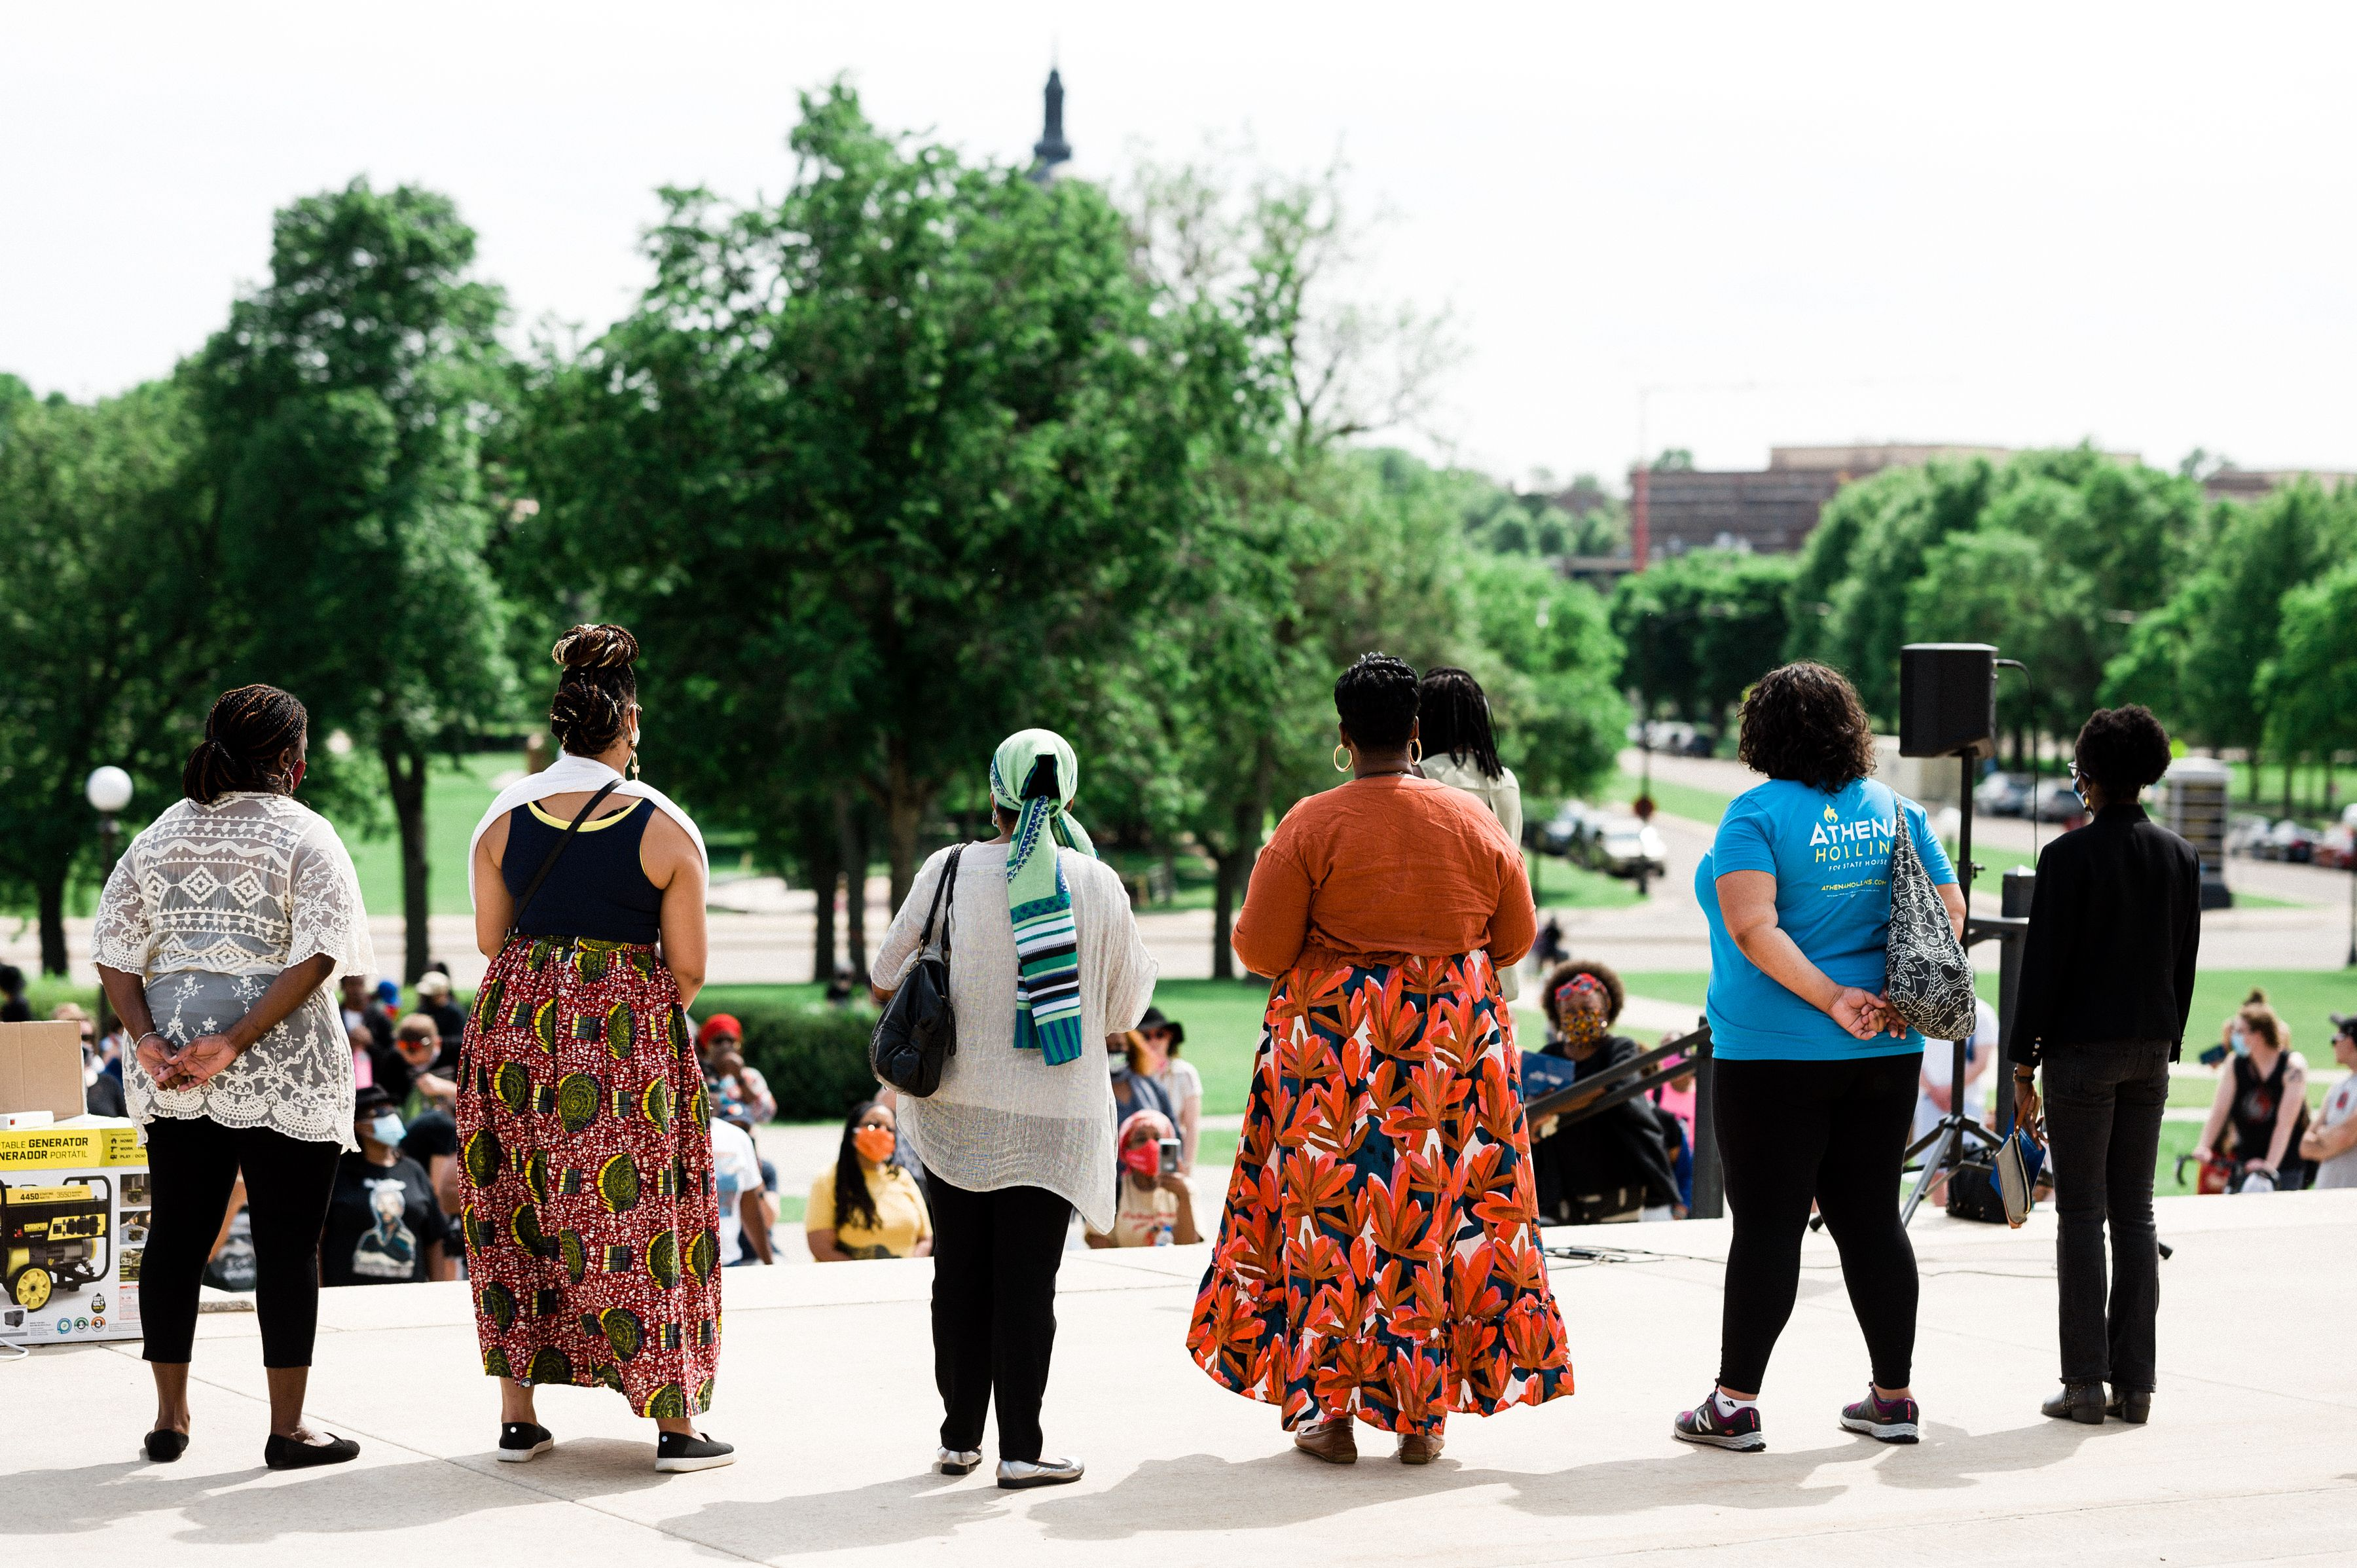 Meet Four Black Women Inspired to Run for Minnesota State Senate by George Floyd's Death